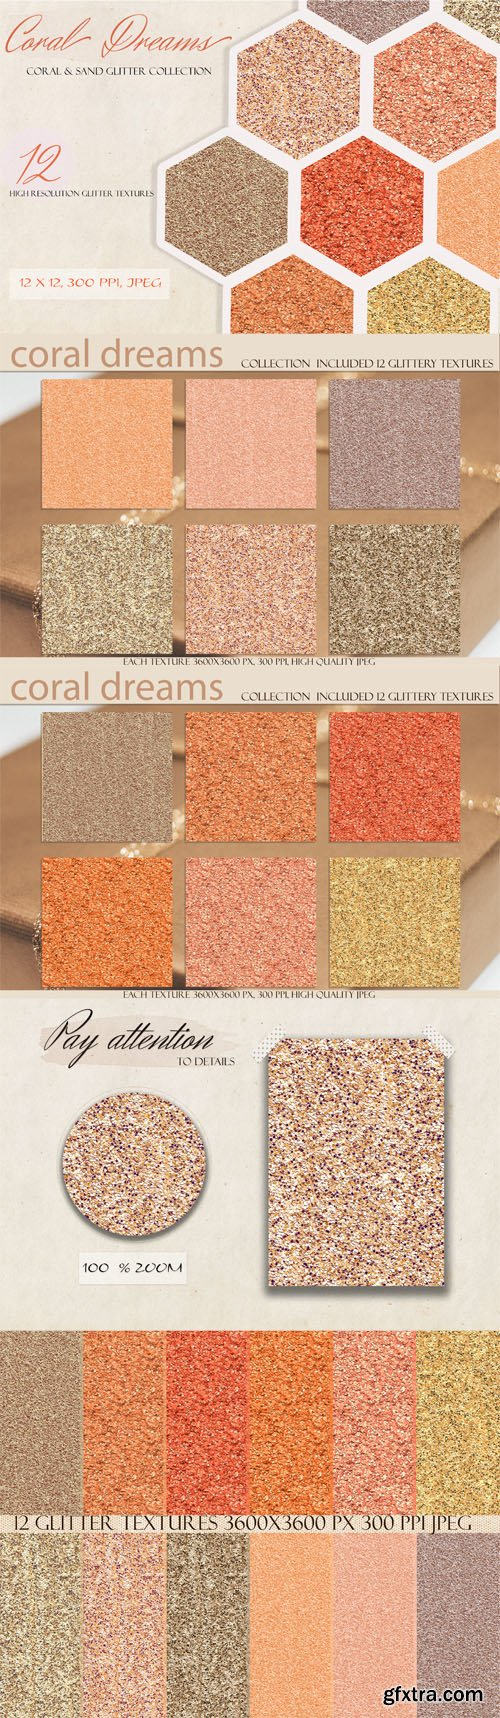 Coral Dreams - Coral & Sand Glitter Textures Collection